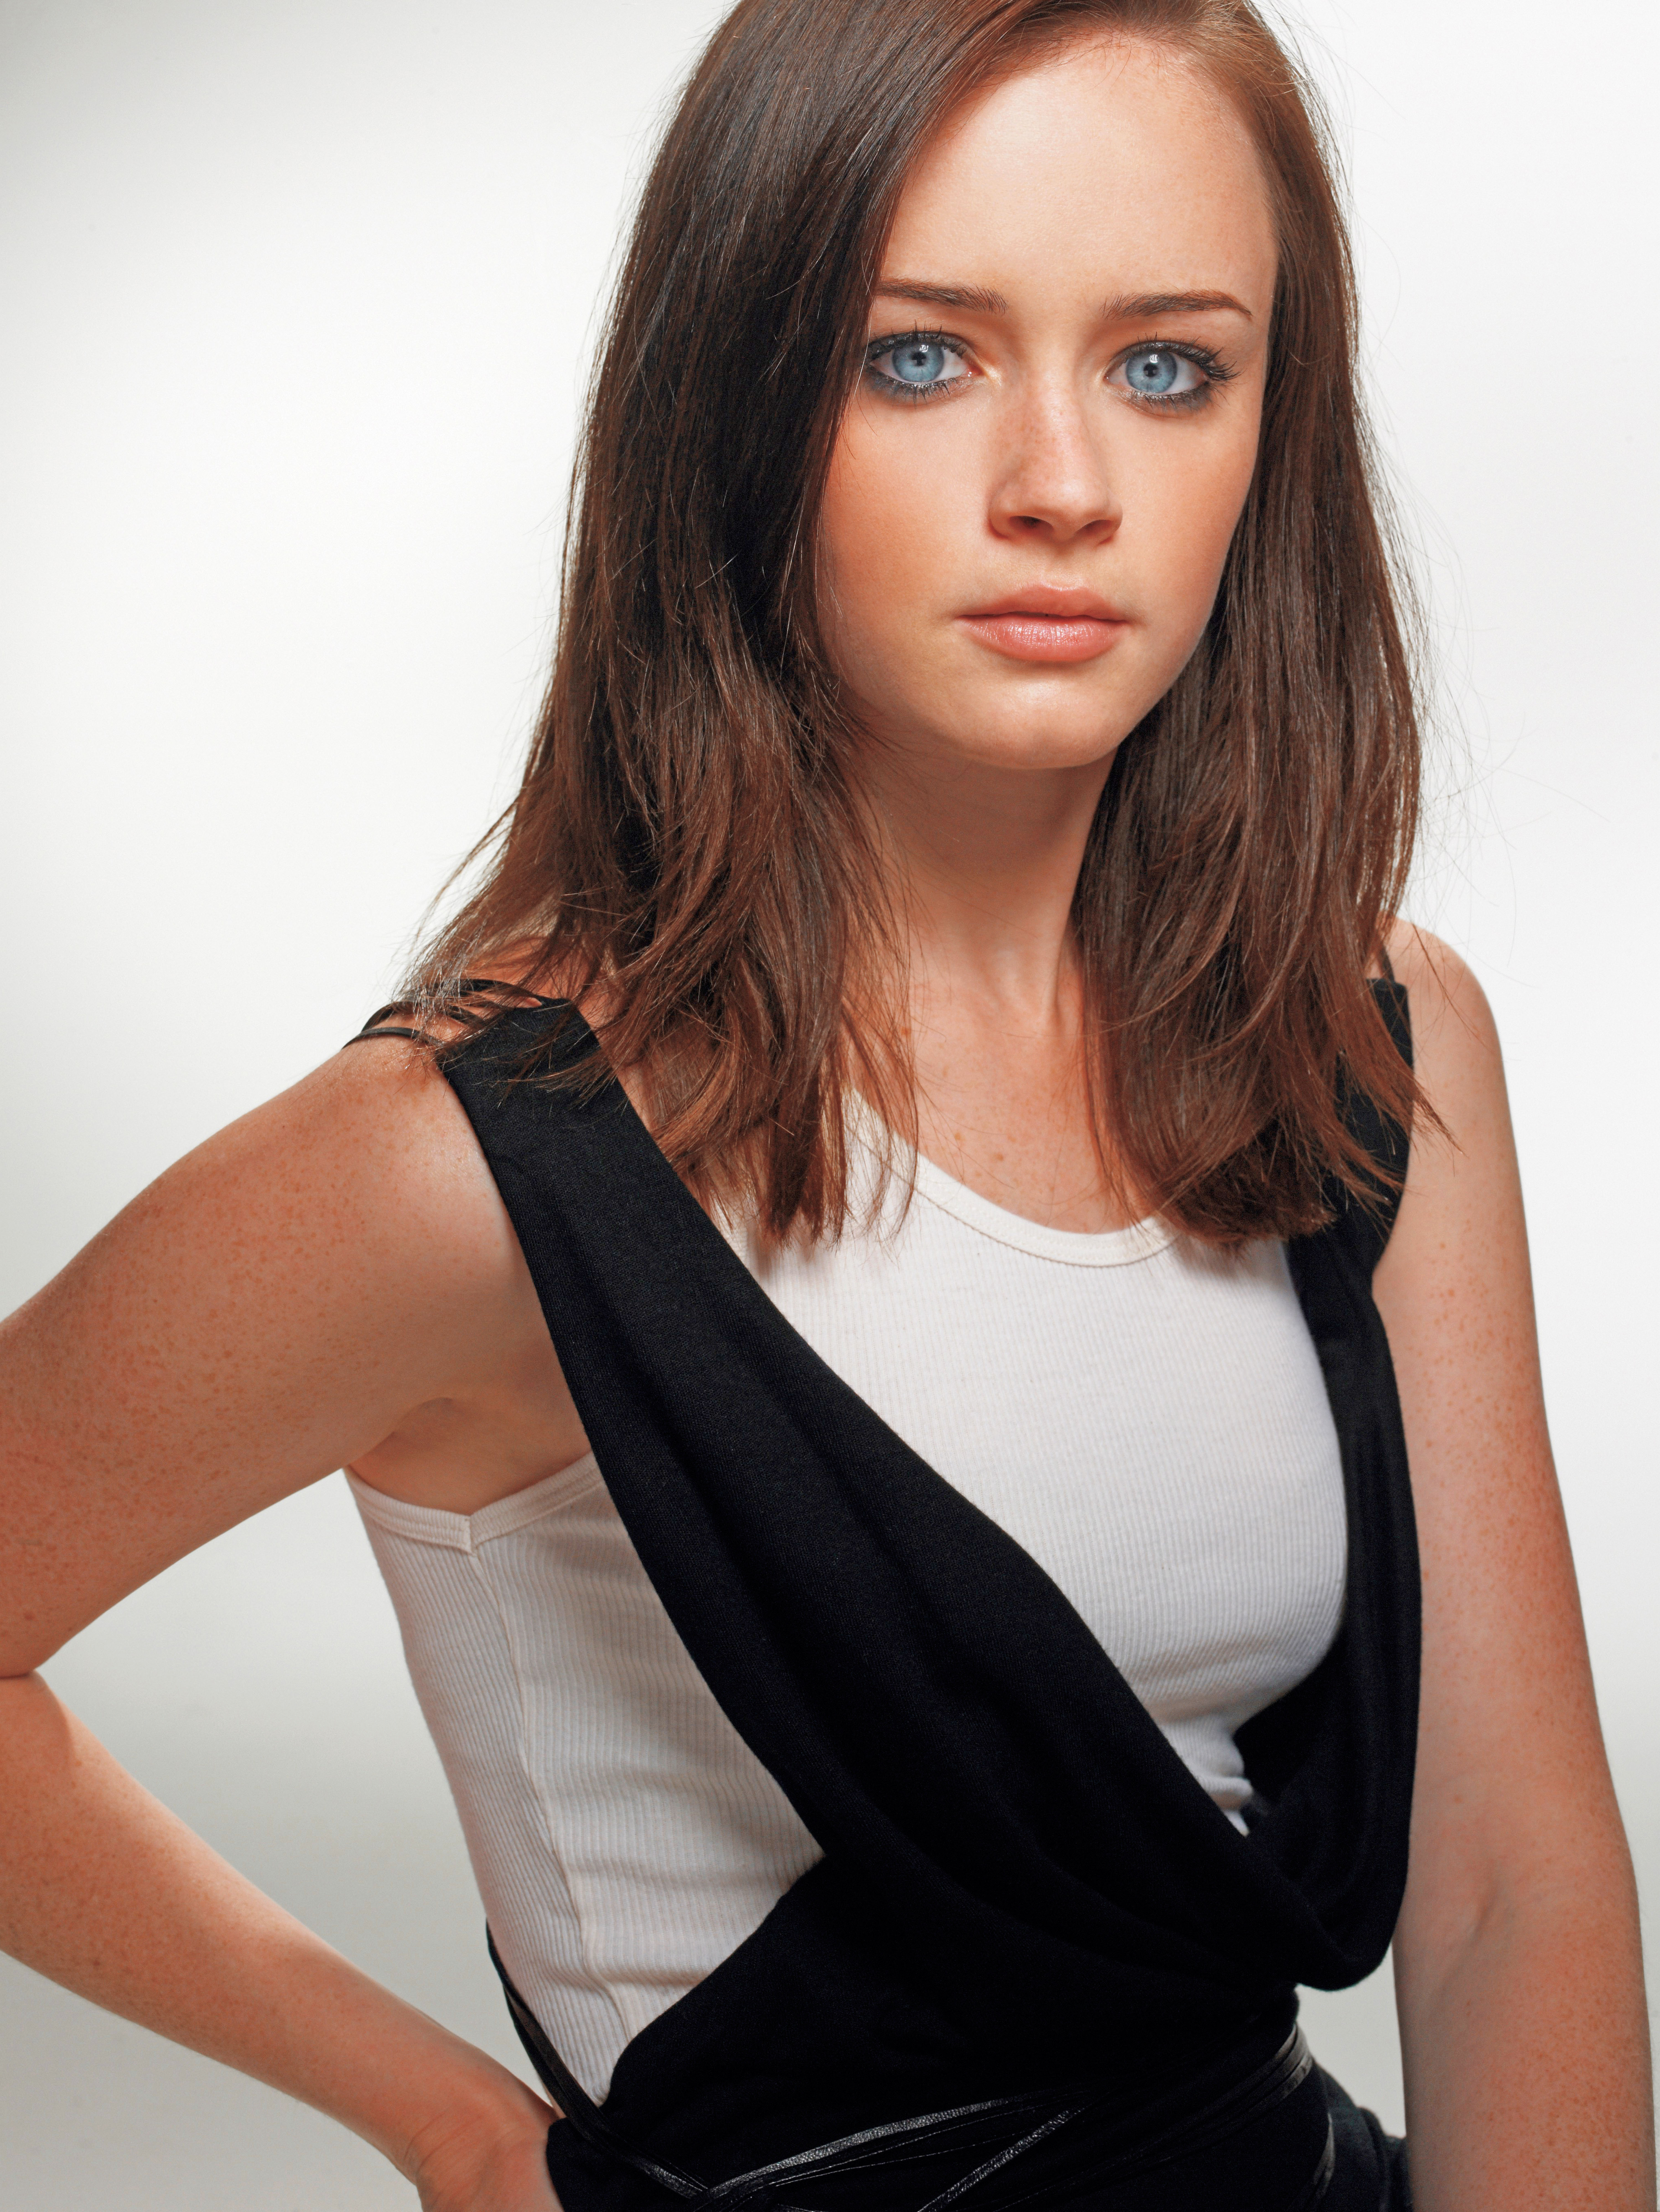 Alexis-Bledel-Beautiful-Hot-Sexy-Dvdbash129-Black-White -4108